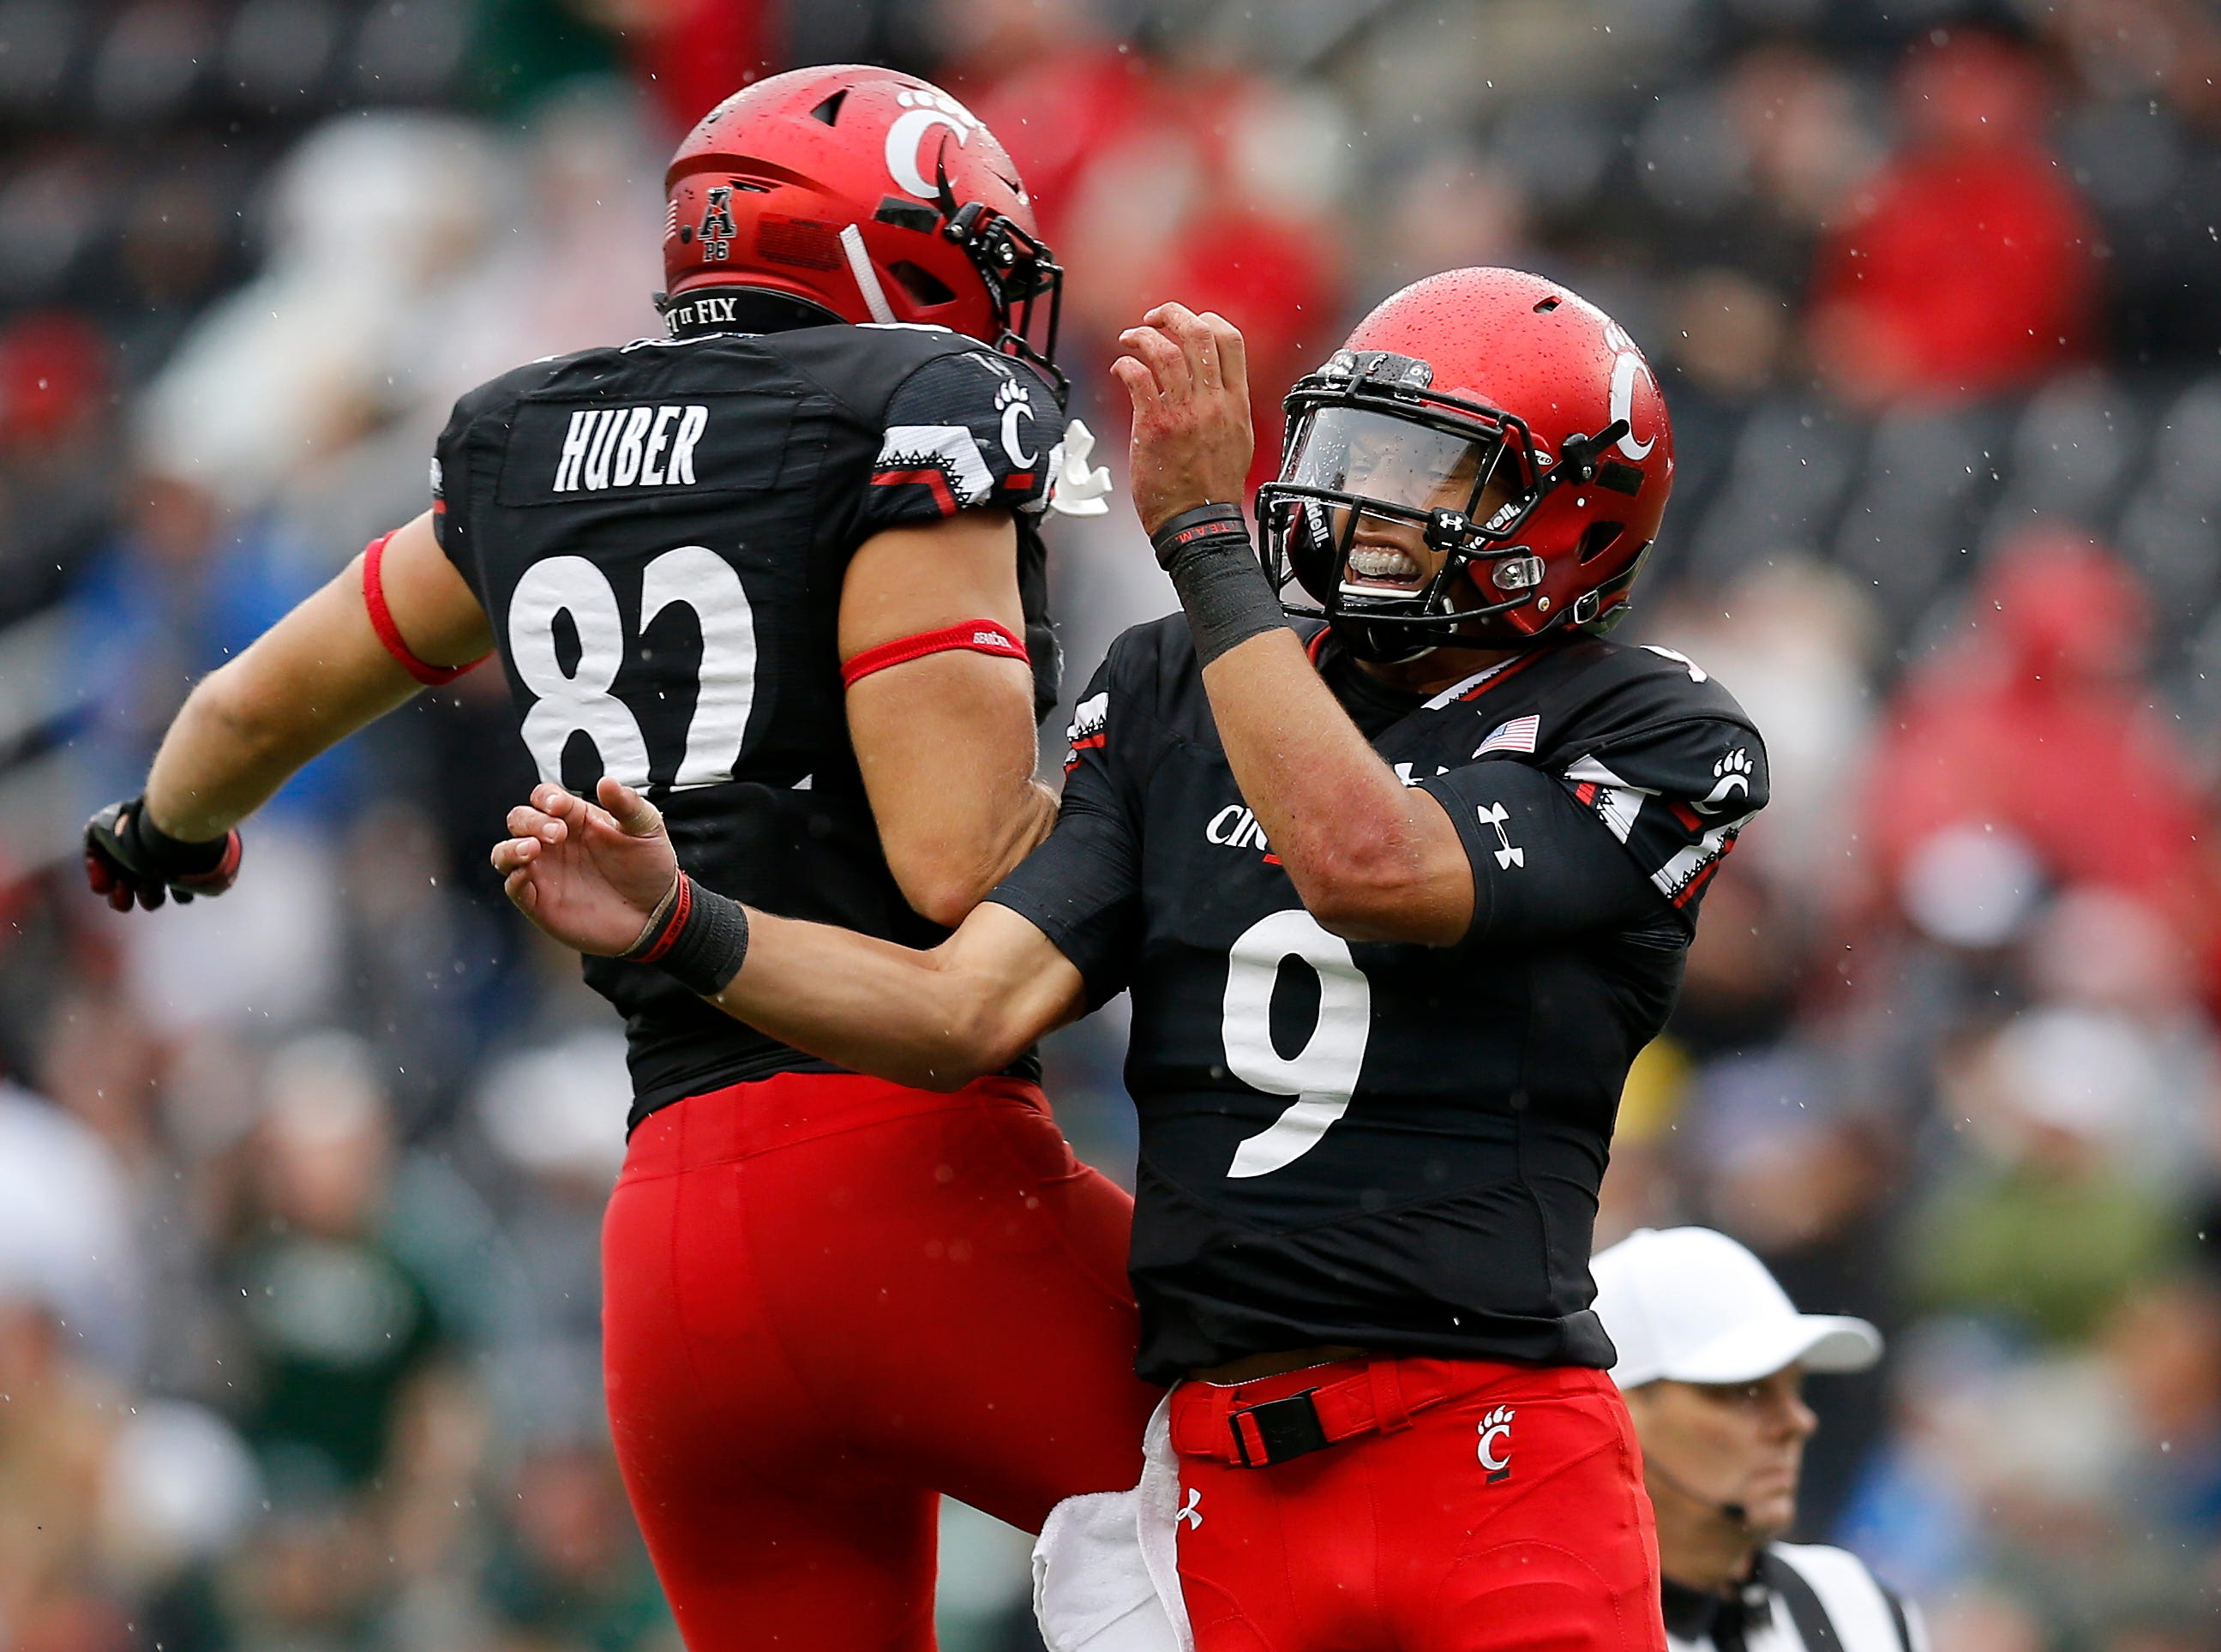 Cincinnati Bearcats tight end Wilson Huber (82) and  quarterback Desmond Ridder (9) celebrate after a touchdown in the fourth quarter of the NCAA football game between the Cincinnati Bearcats and the Ohio Bobcats at Nippert Stadium on the University of Cincinnati campus in Cincinnati on Saturday, Sept. 22, 2018. The Bearcats overcame a 24-7 deficit at halftime to win 34-30, improving to 4-0 on the season.